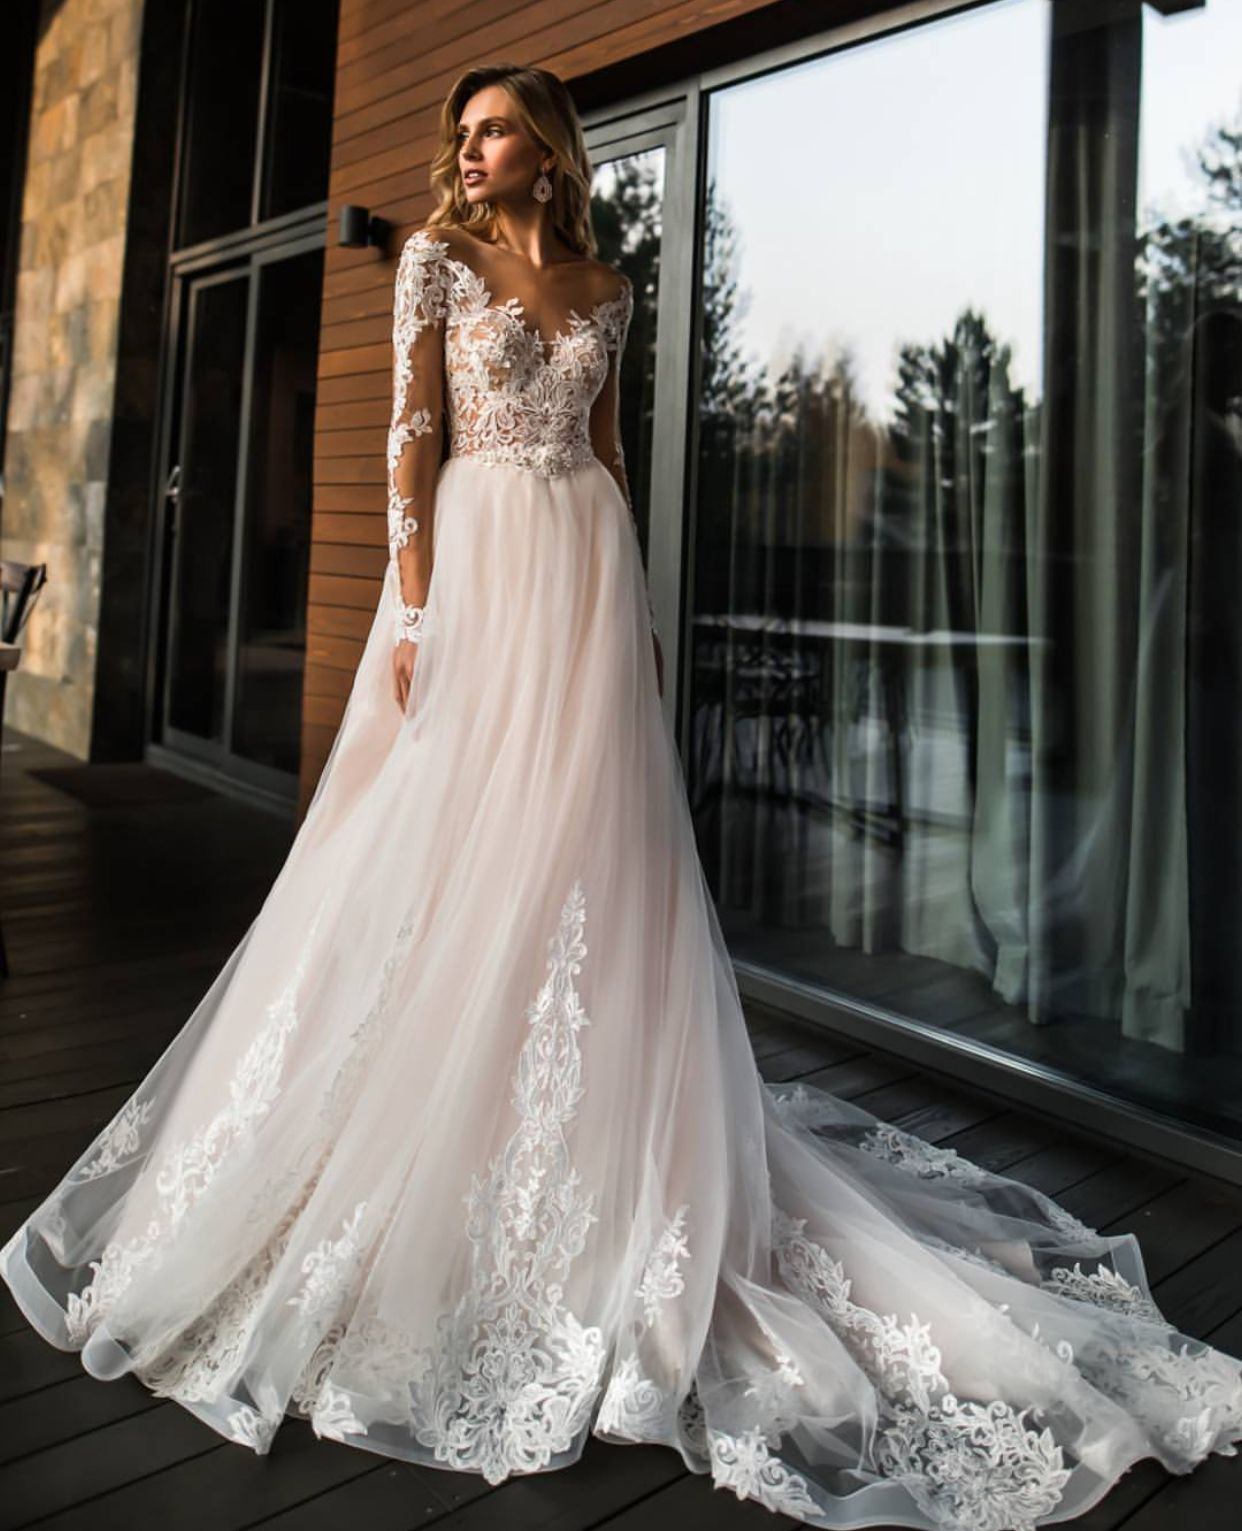 Flowy wedding dress with sleeves  Pin by Christina Barnes on Wedding Dresses  Pinterest  Florence